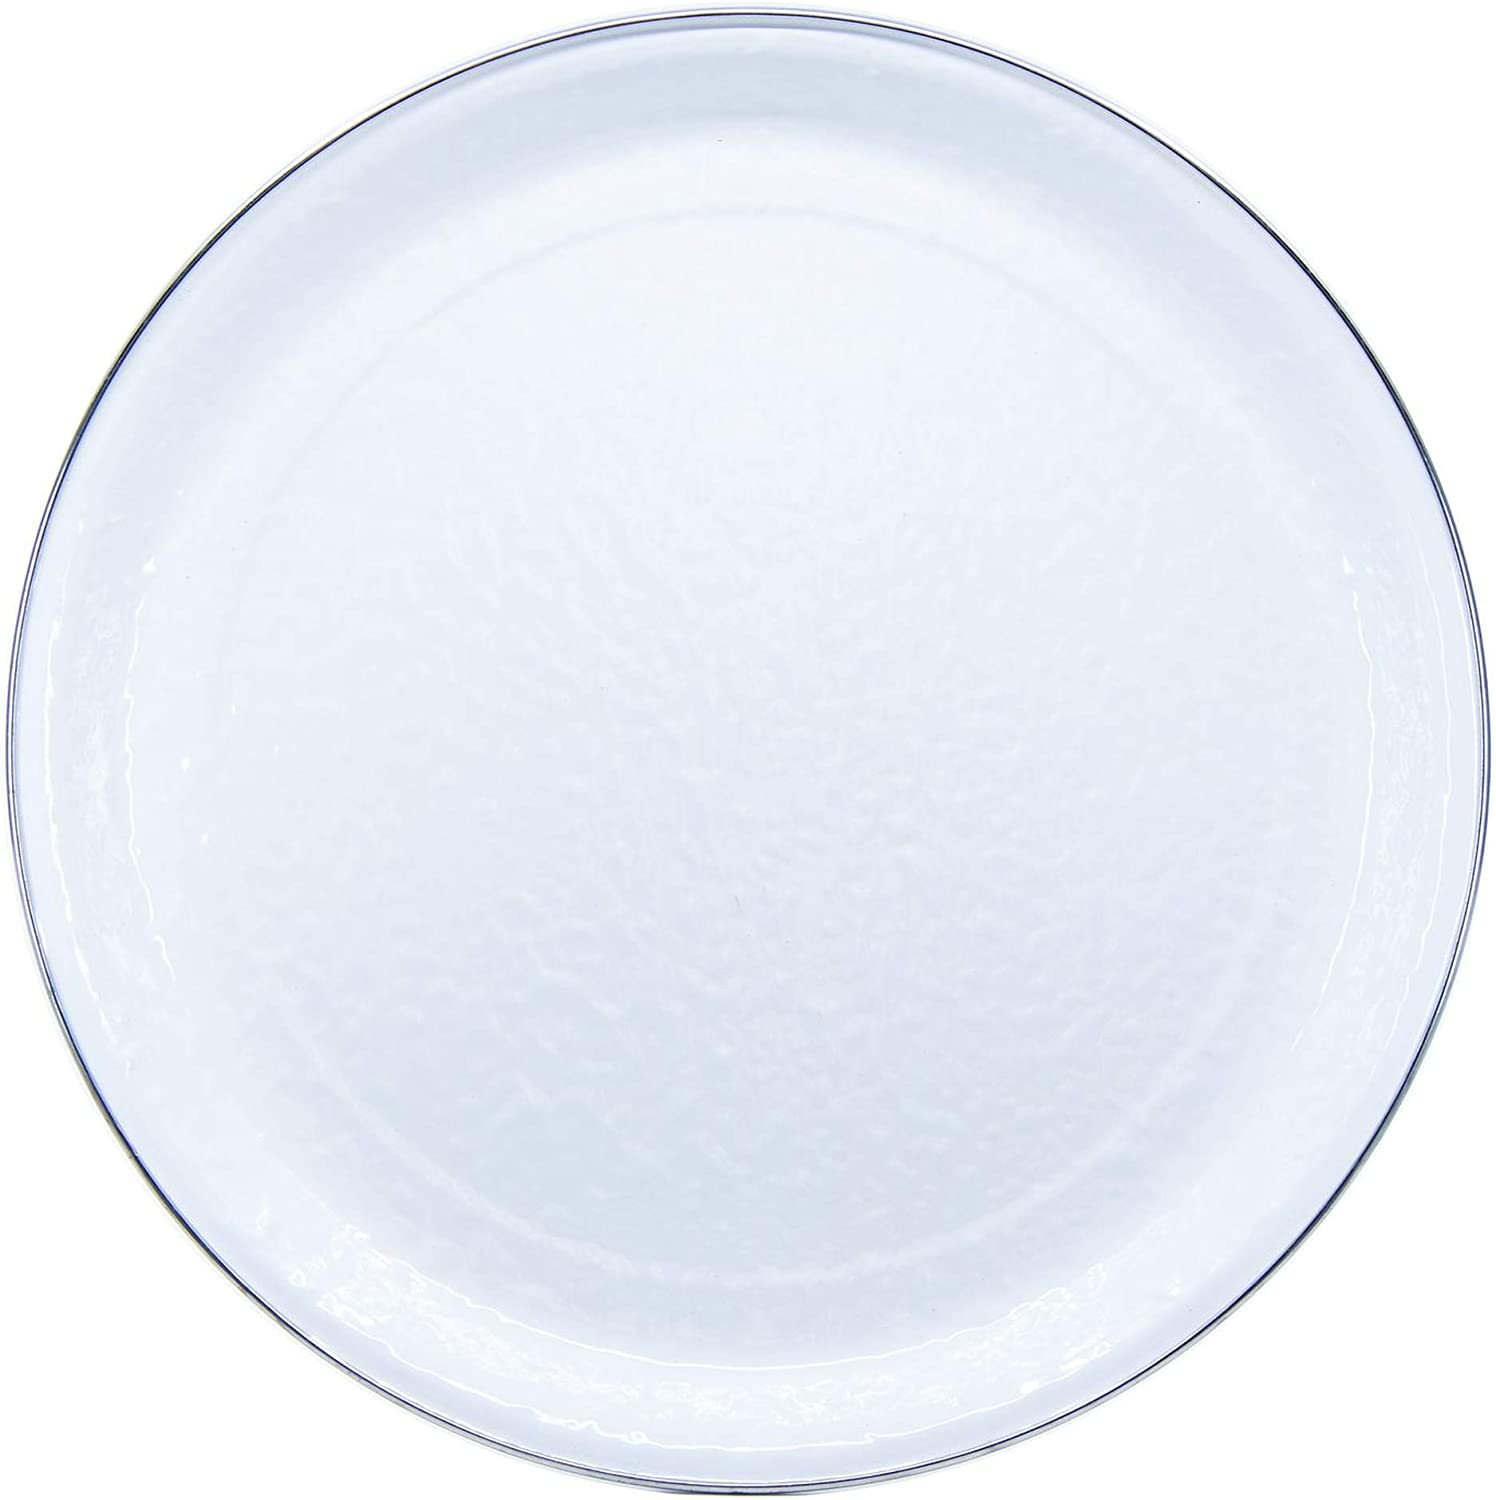 Golden Rabbit Enamelware - White on White Texture Pattern - 15.5 Inch Round Serving Tray